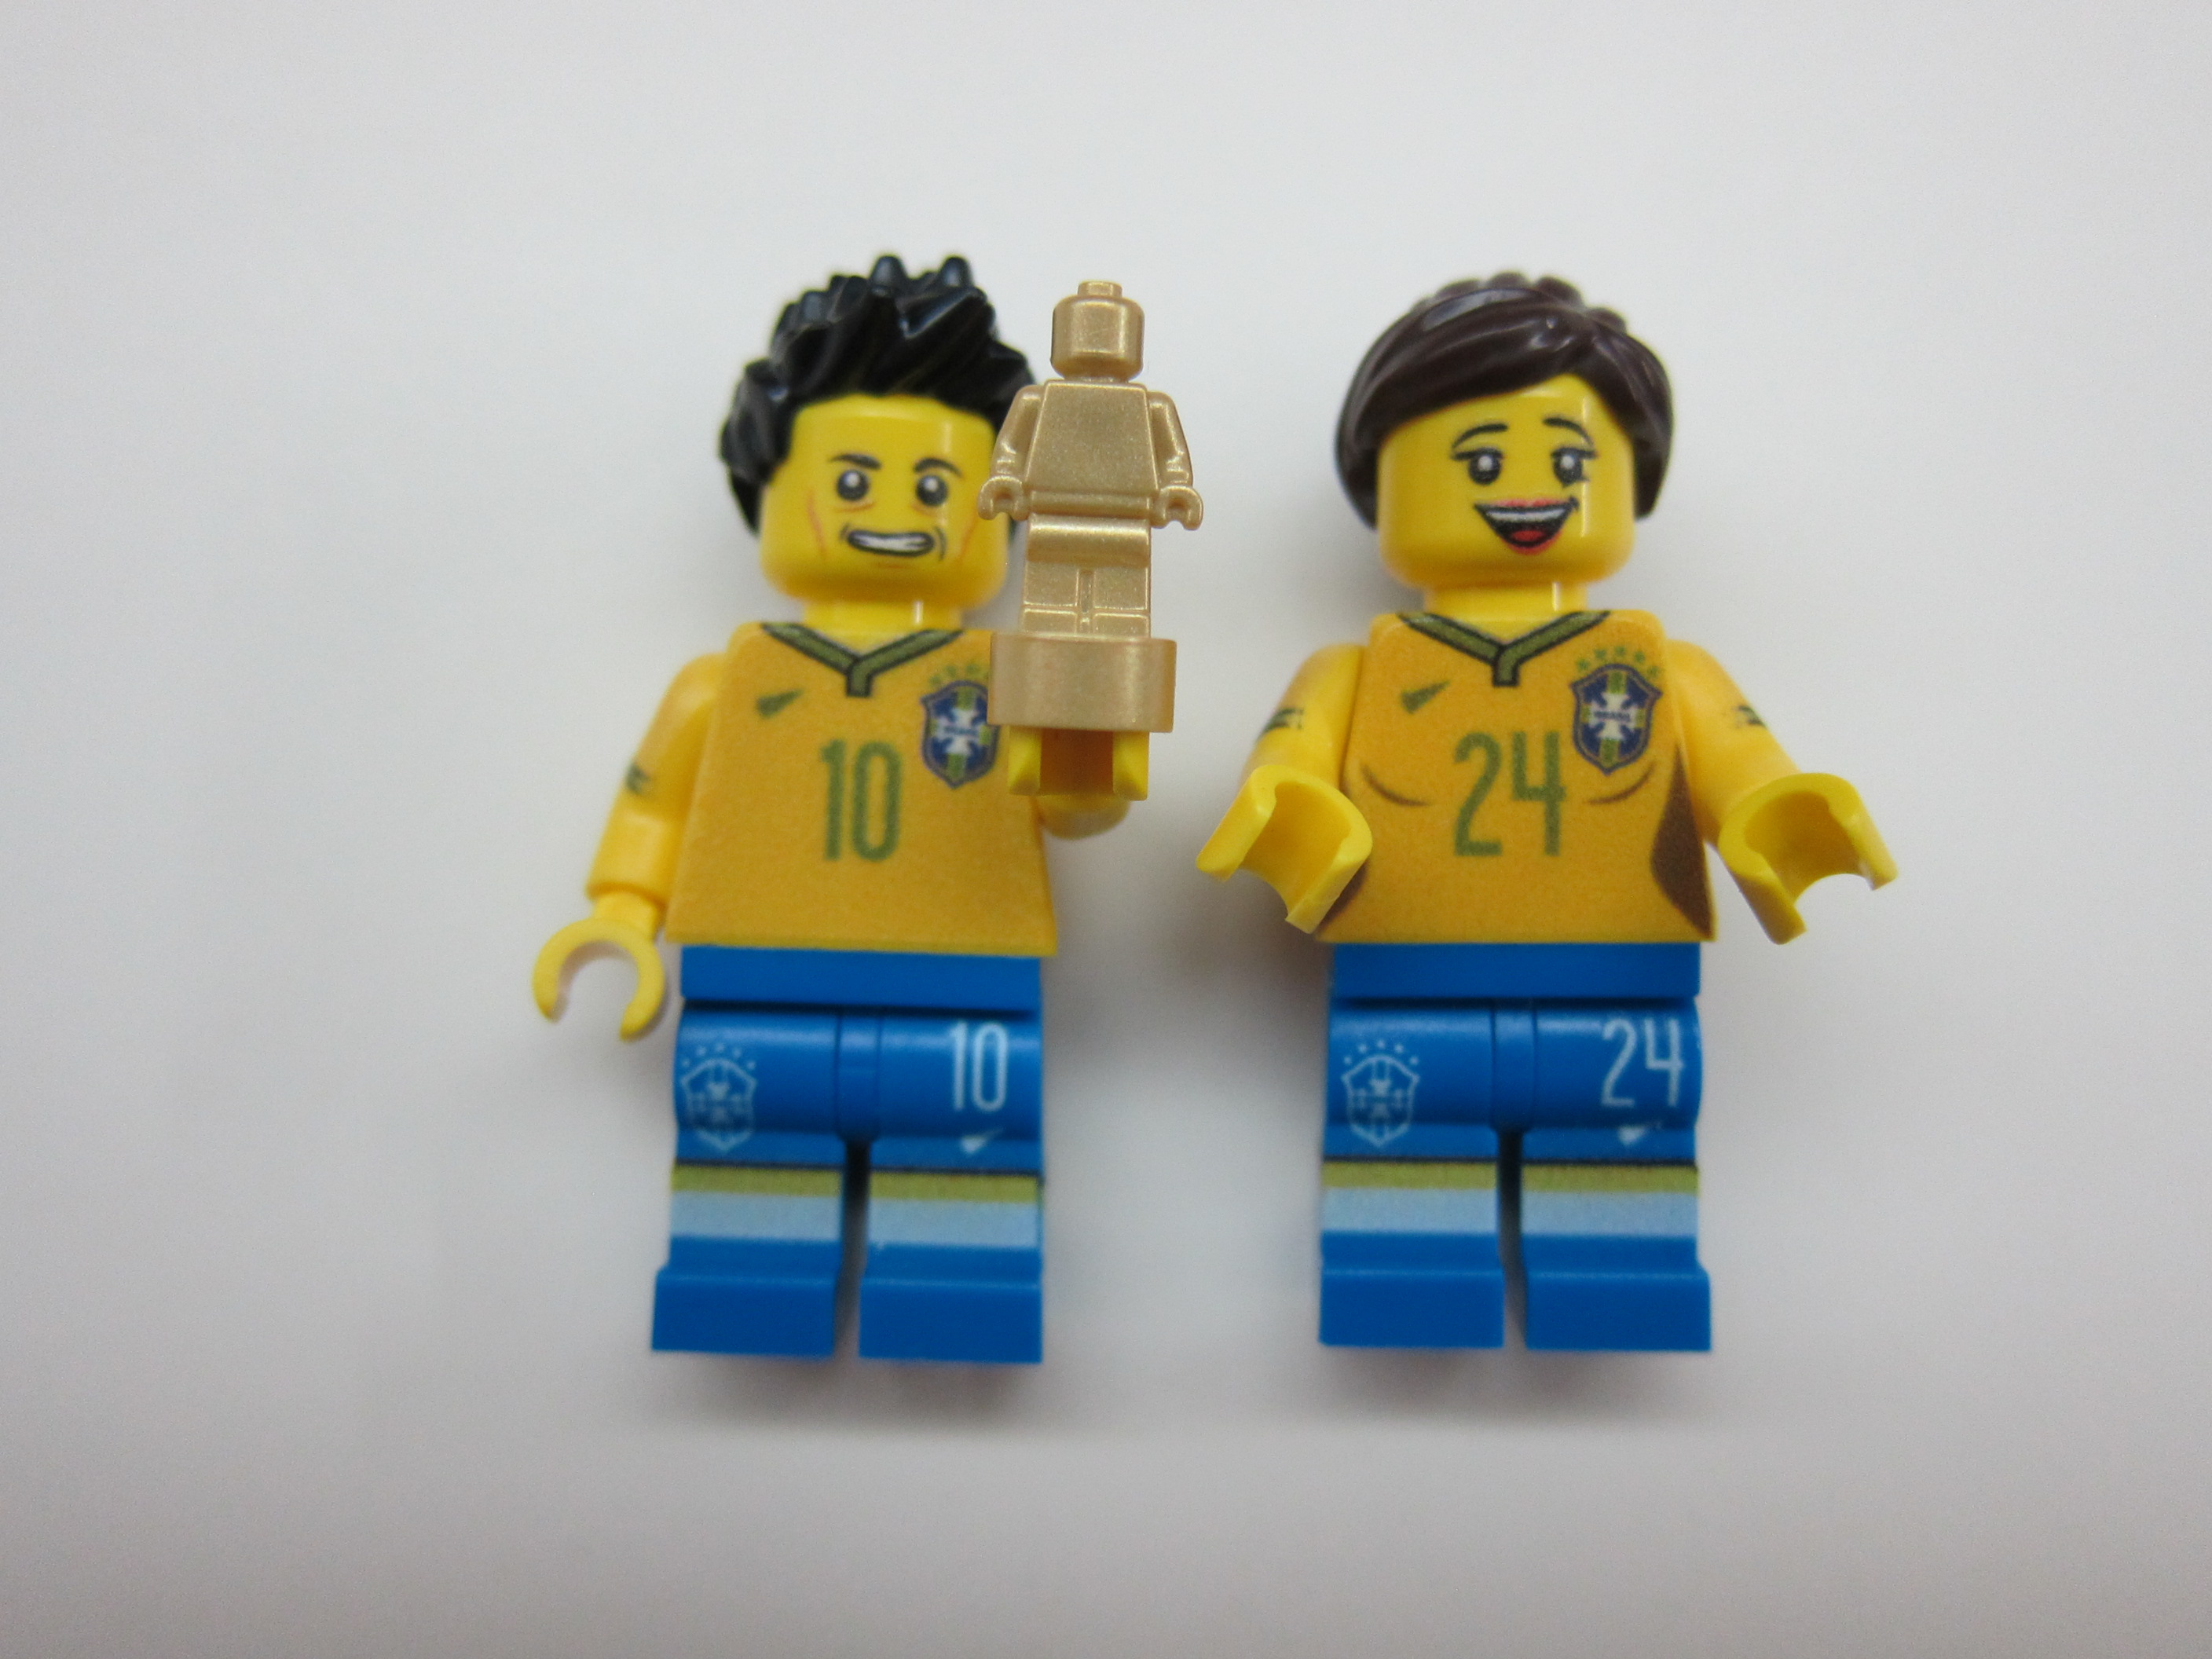 Lego Minifig Camera : Lego custom world cup minifigures by minifiglabs «